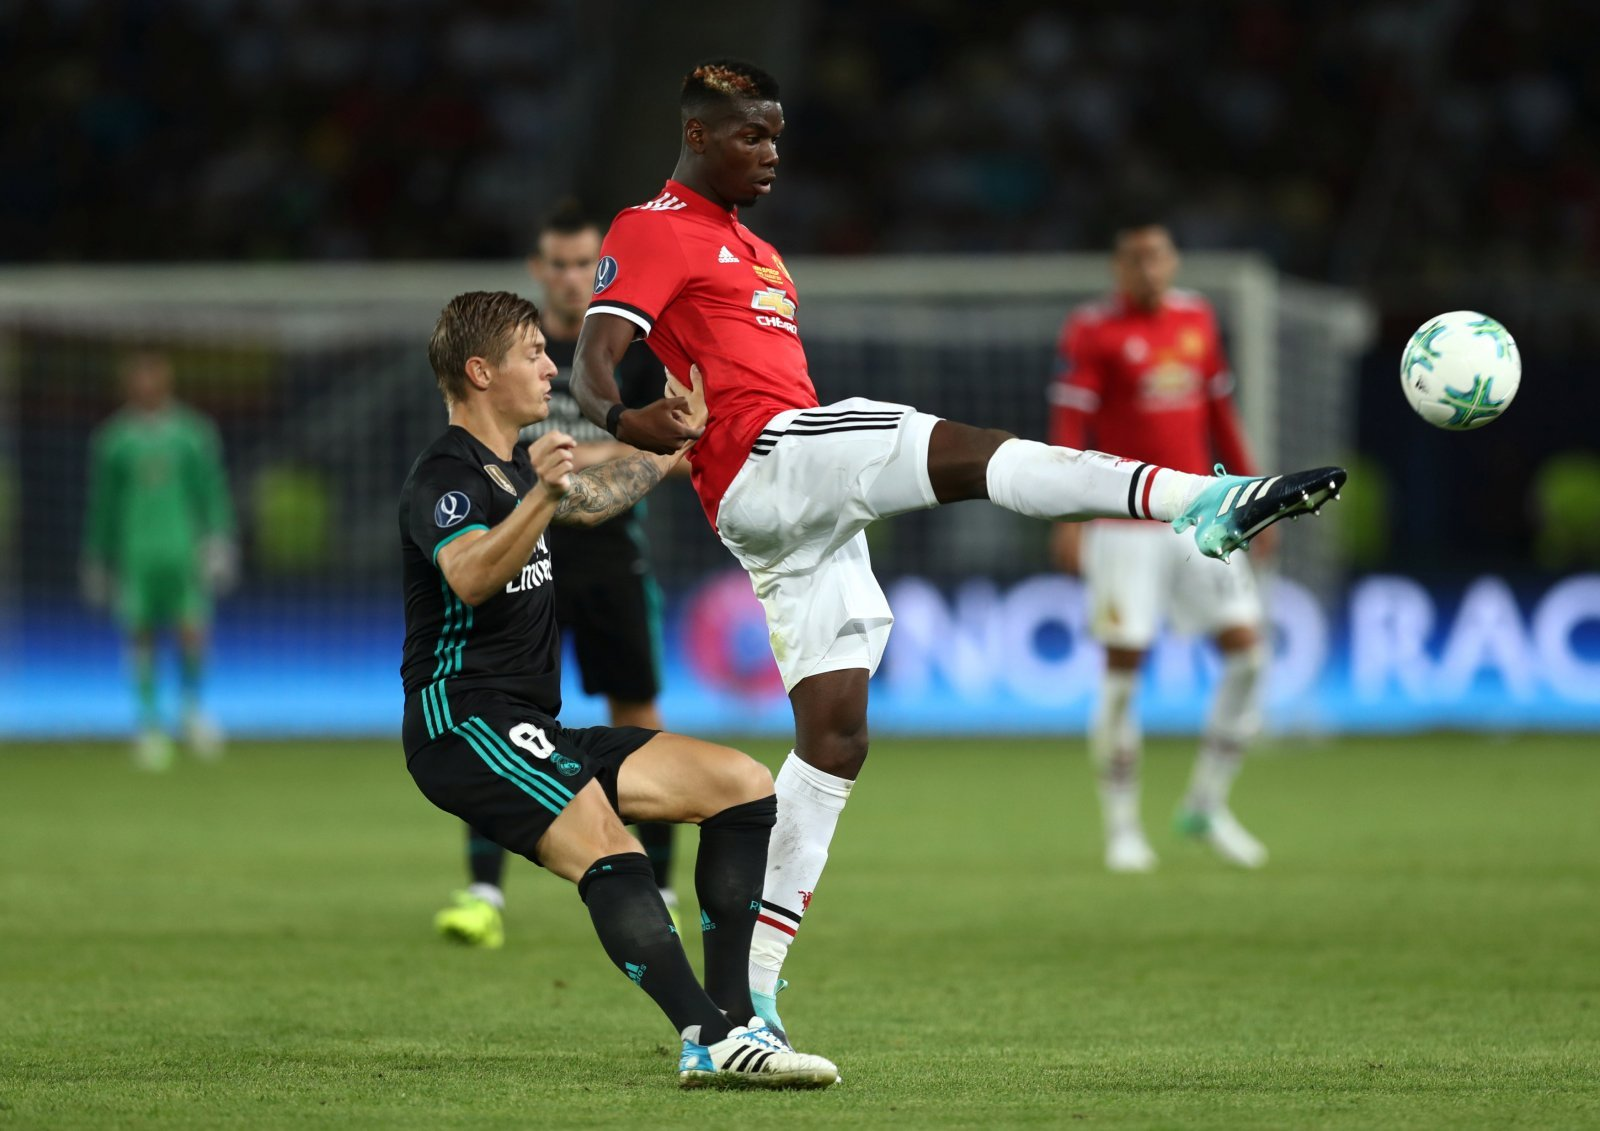 Manchester United: Toni Kroos of interest as part of potential Paul Pogba deal